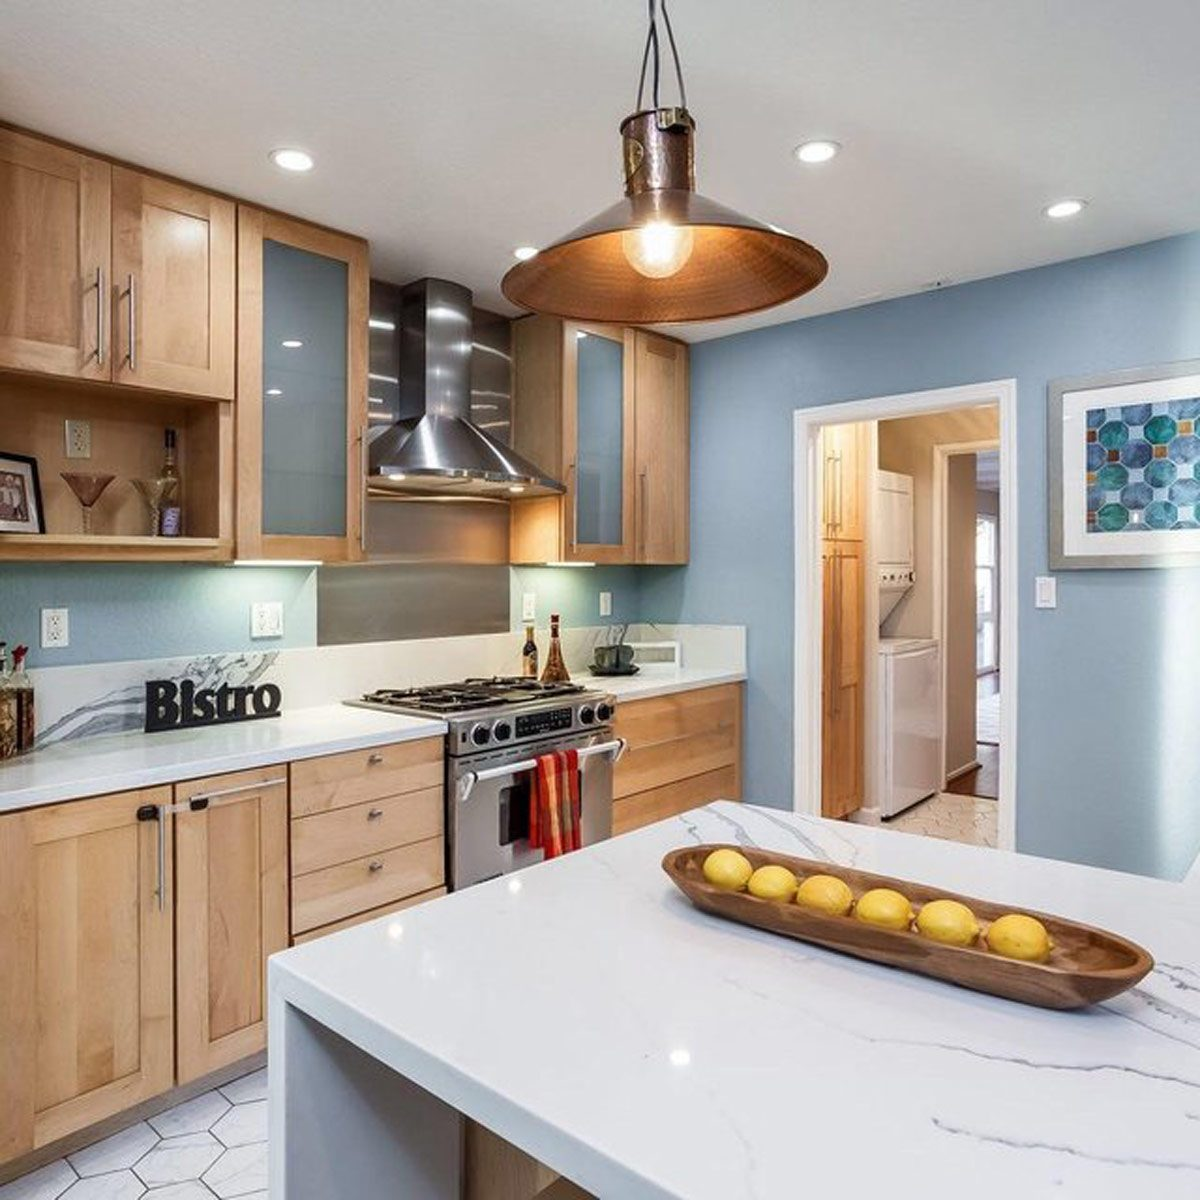 12 Ways To Modernize Your Kitchen According To Reddit Users